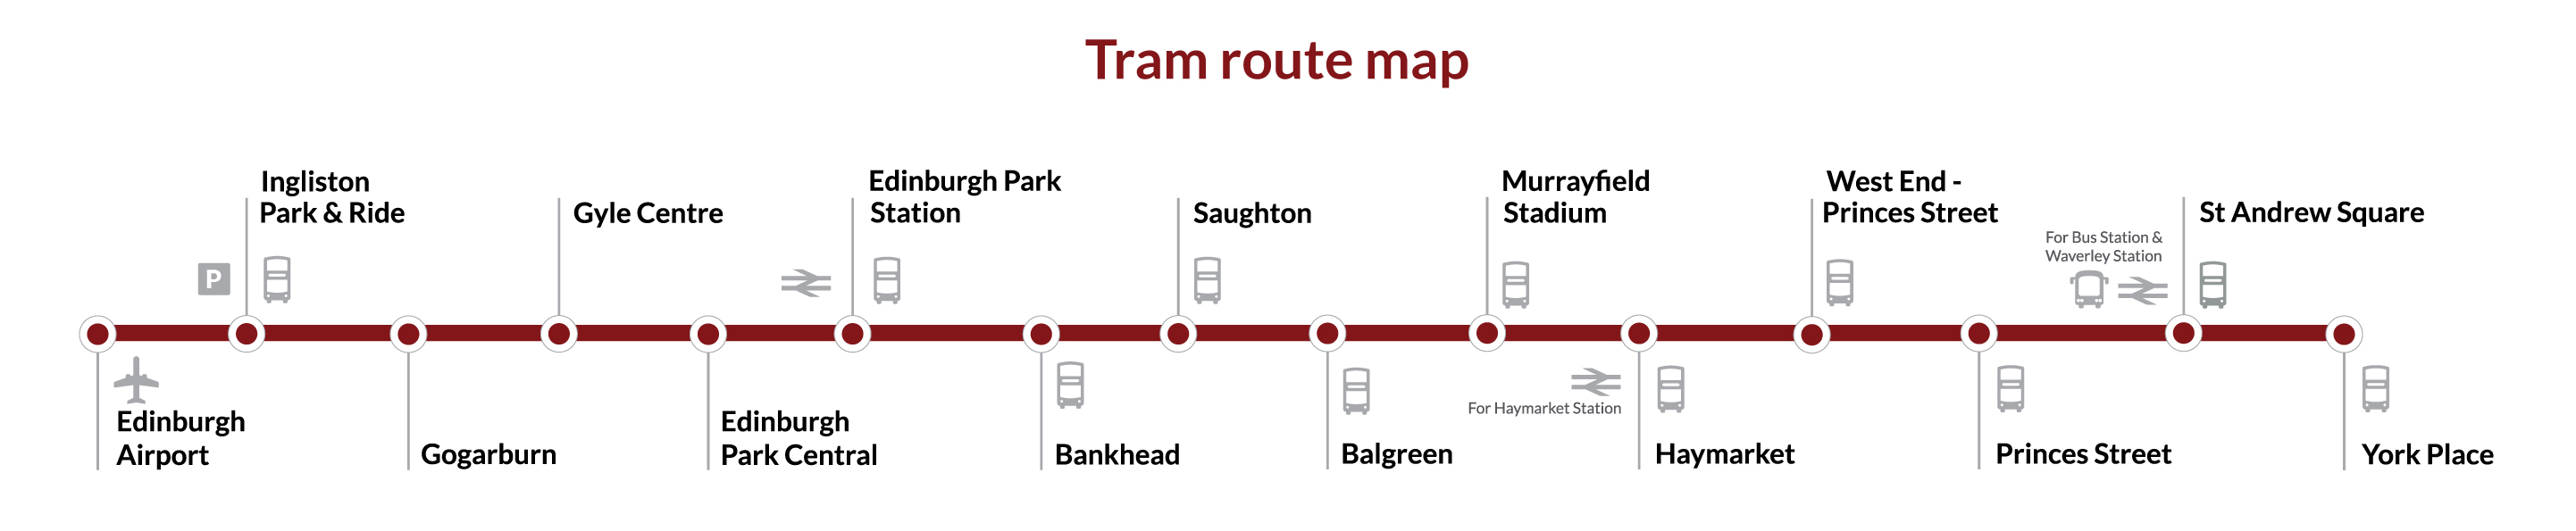 Tram Route Map